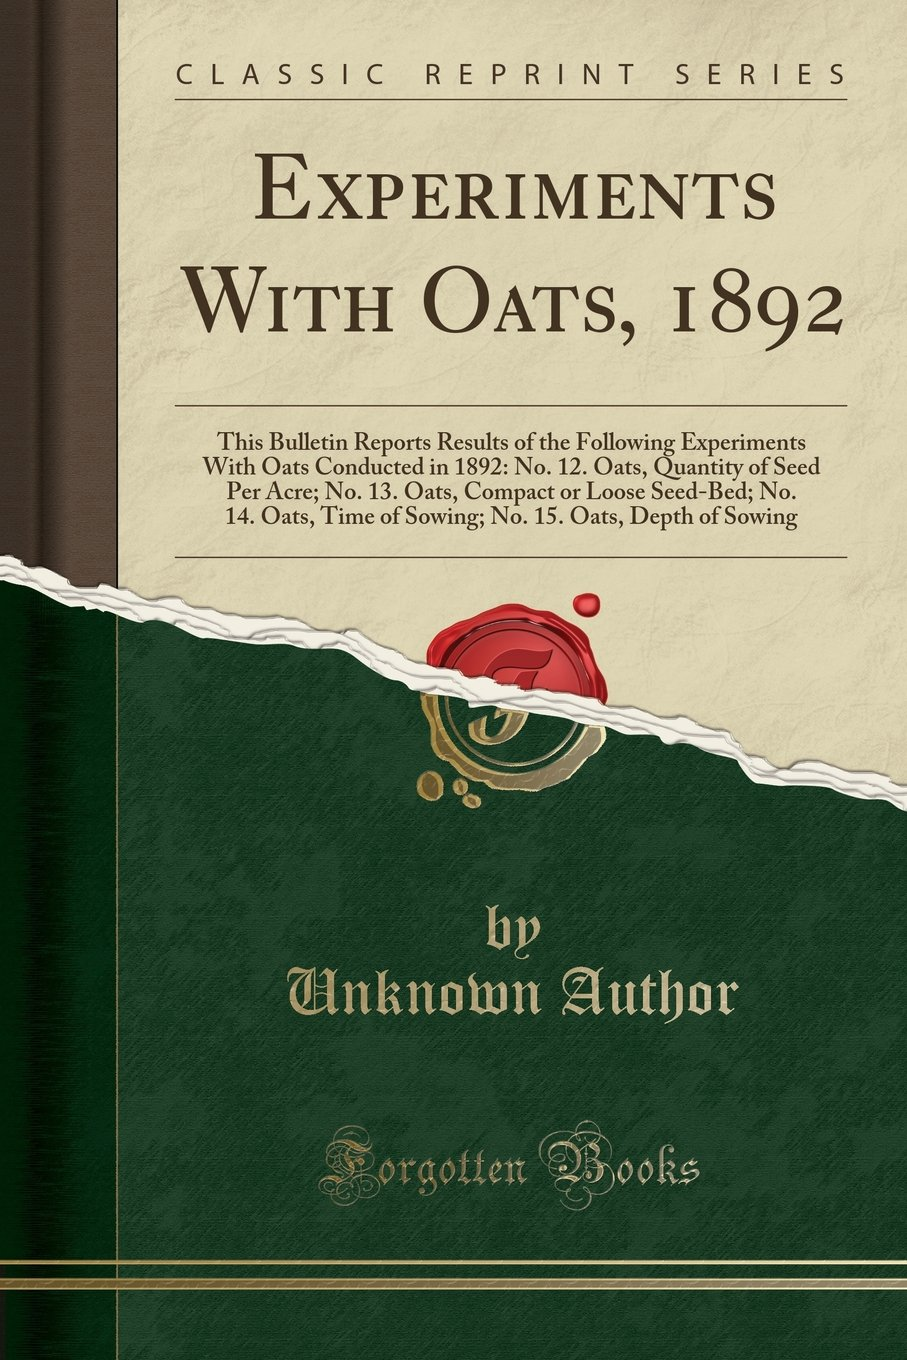 Download Experiments With Oats, 1892: This Bulletin Reports Results of the Following Experiments With Oats Conducted in 1892: No. 12. Oats, Quantity of Seed ... Time of Sowing; No. 15. Oats, Depth of Sow PDF